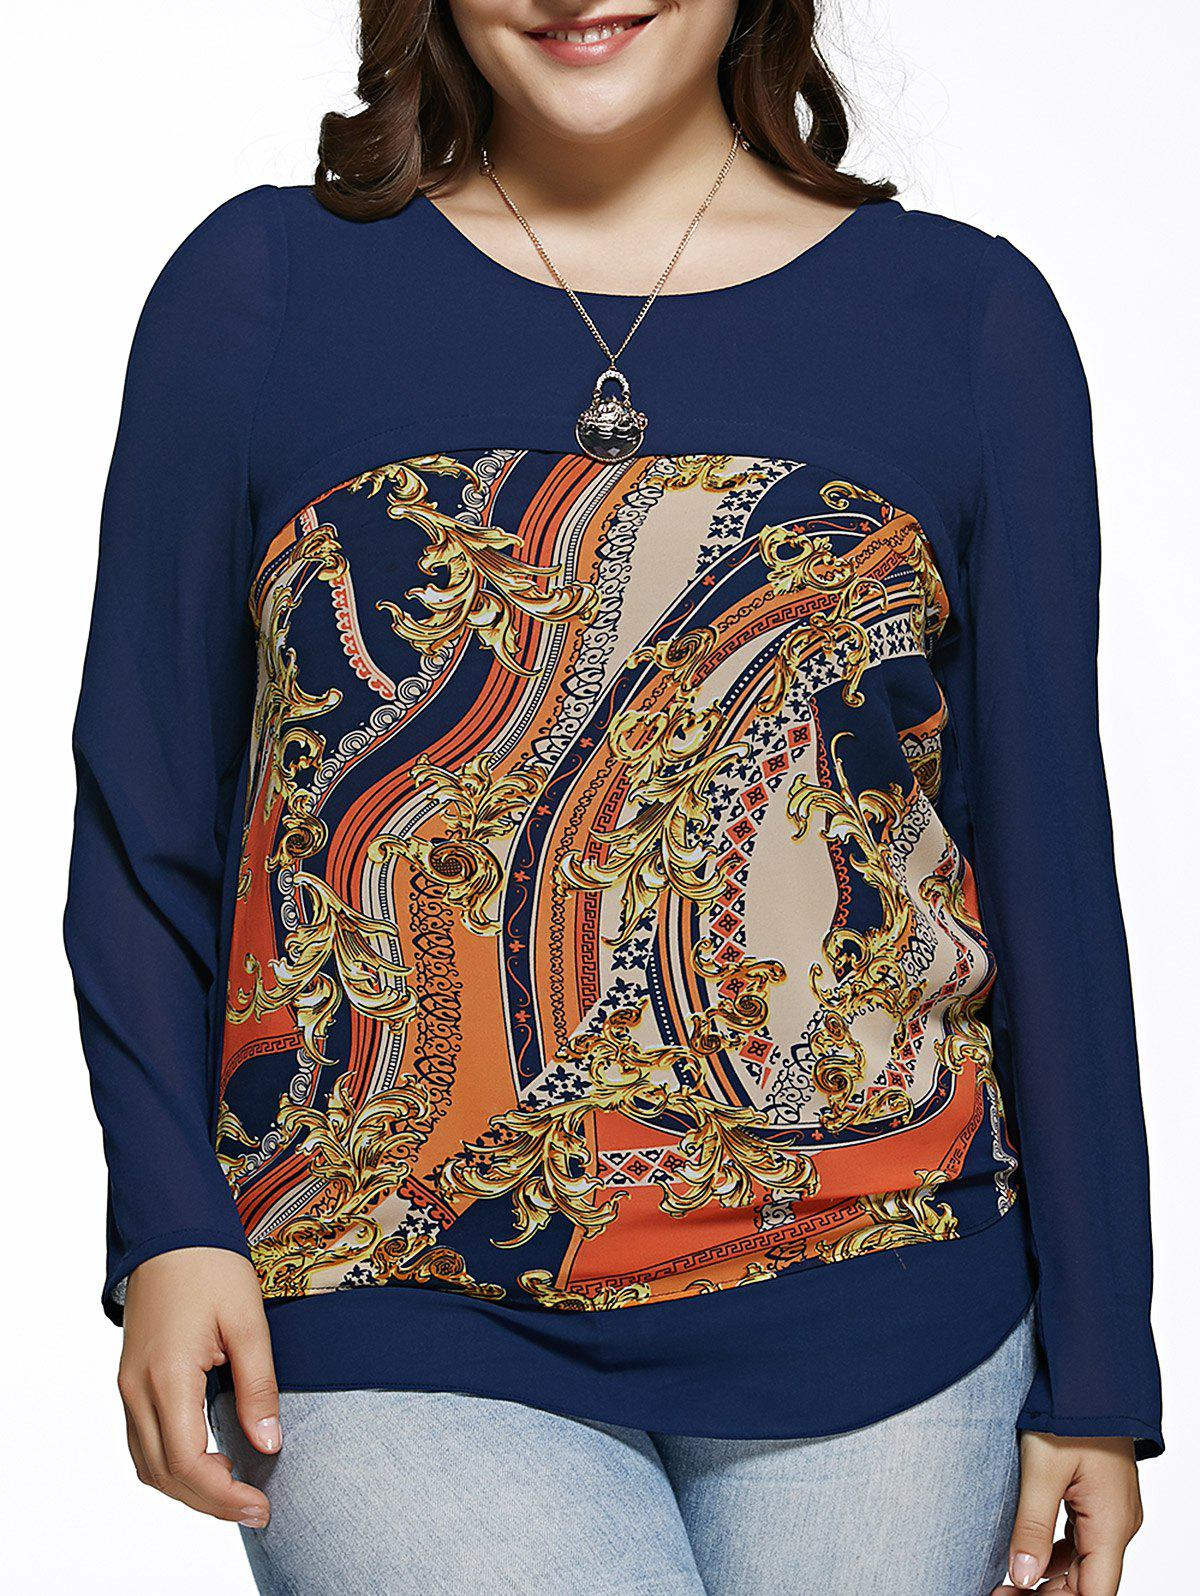 Oversized Chic Long Sleeve Abstract Print Blouse - BLUE 6XL